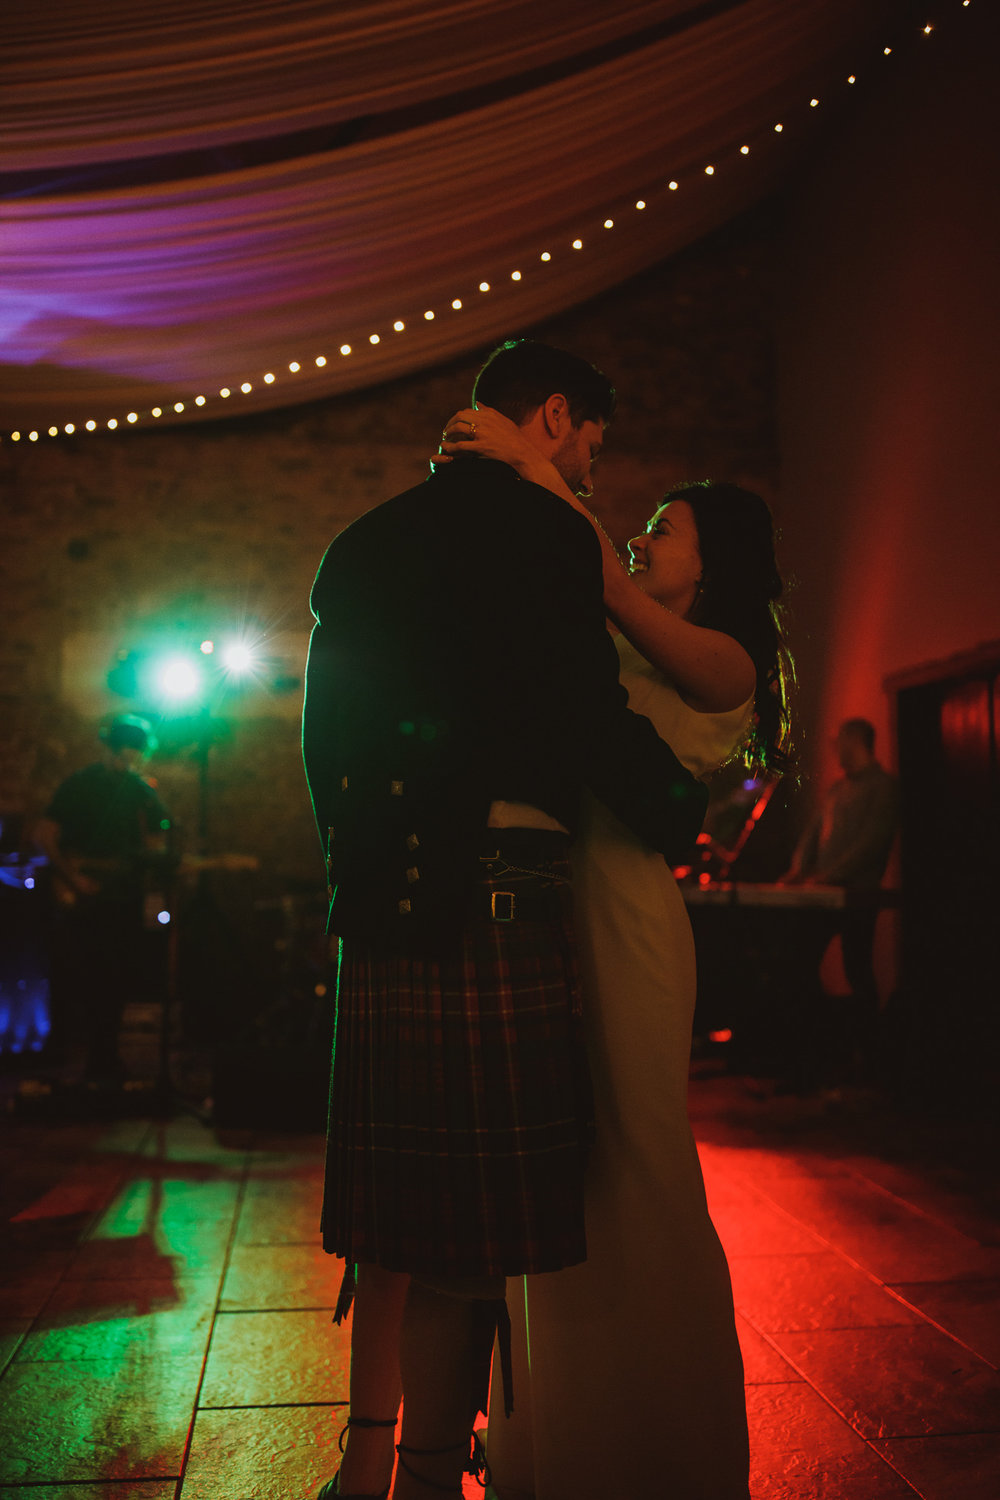 hornington_manor_wedding_photographer-122.jpg